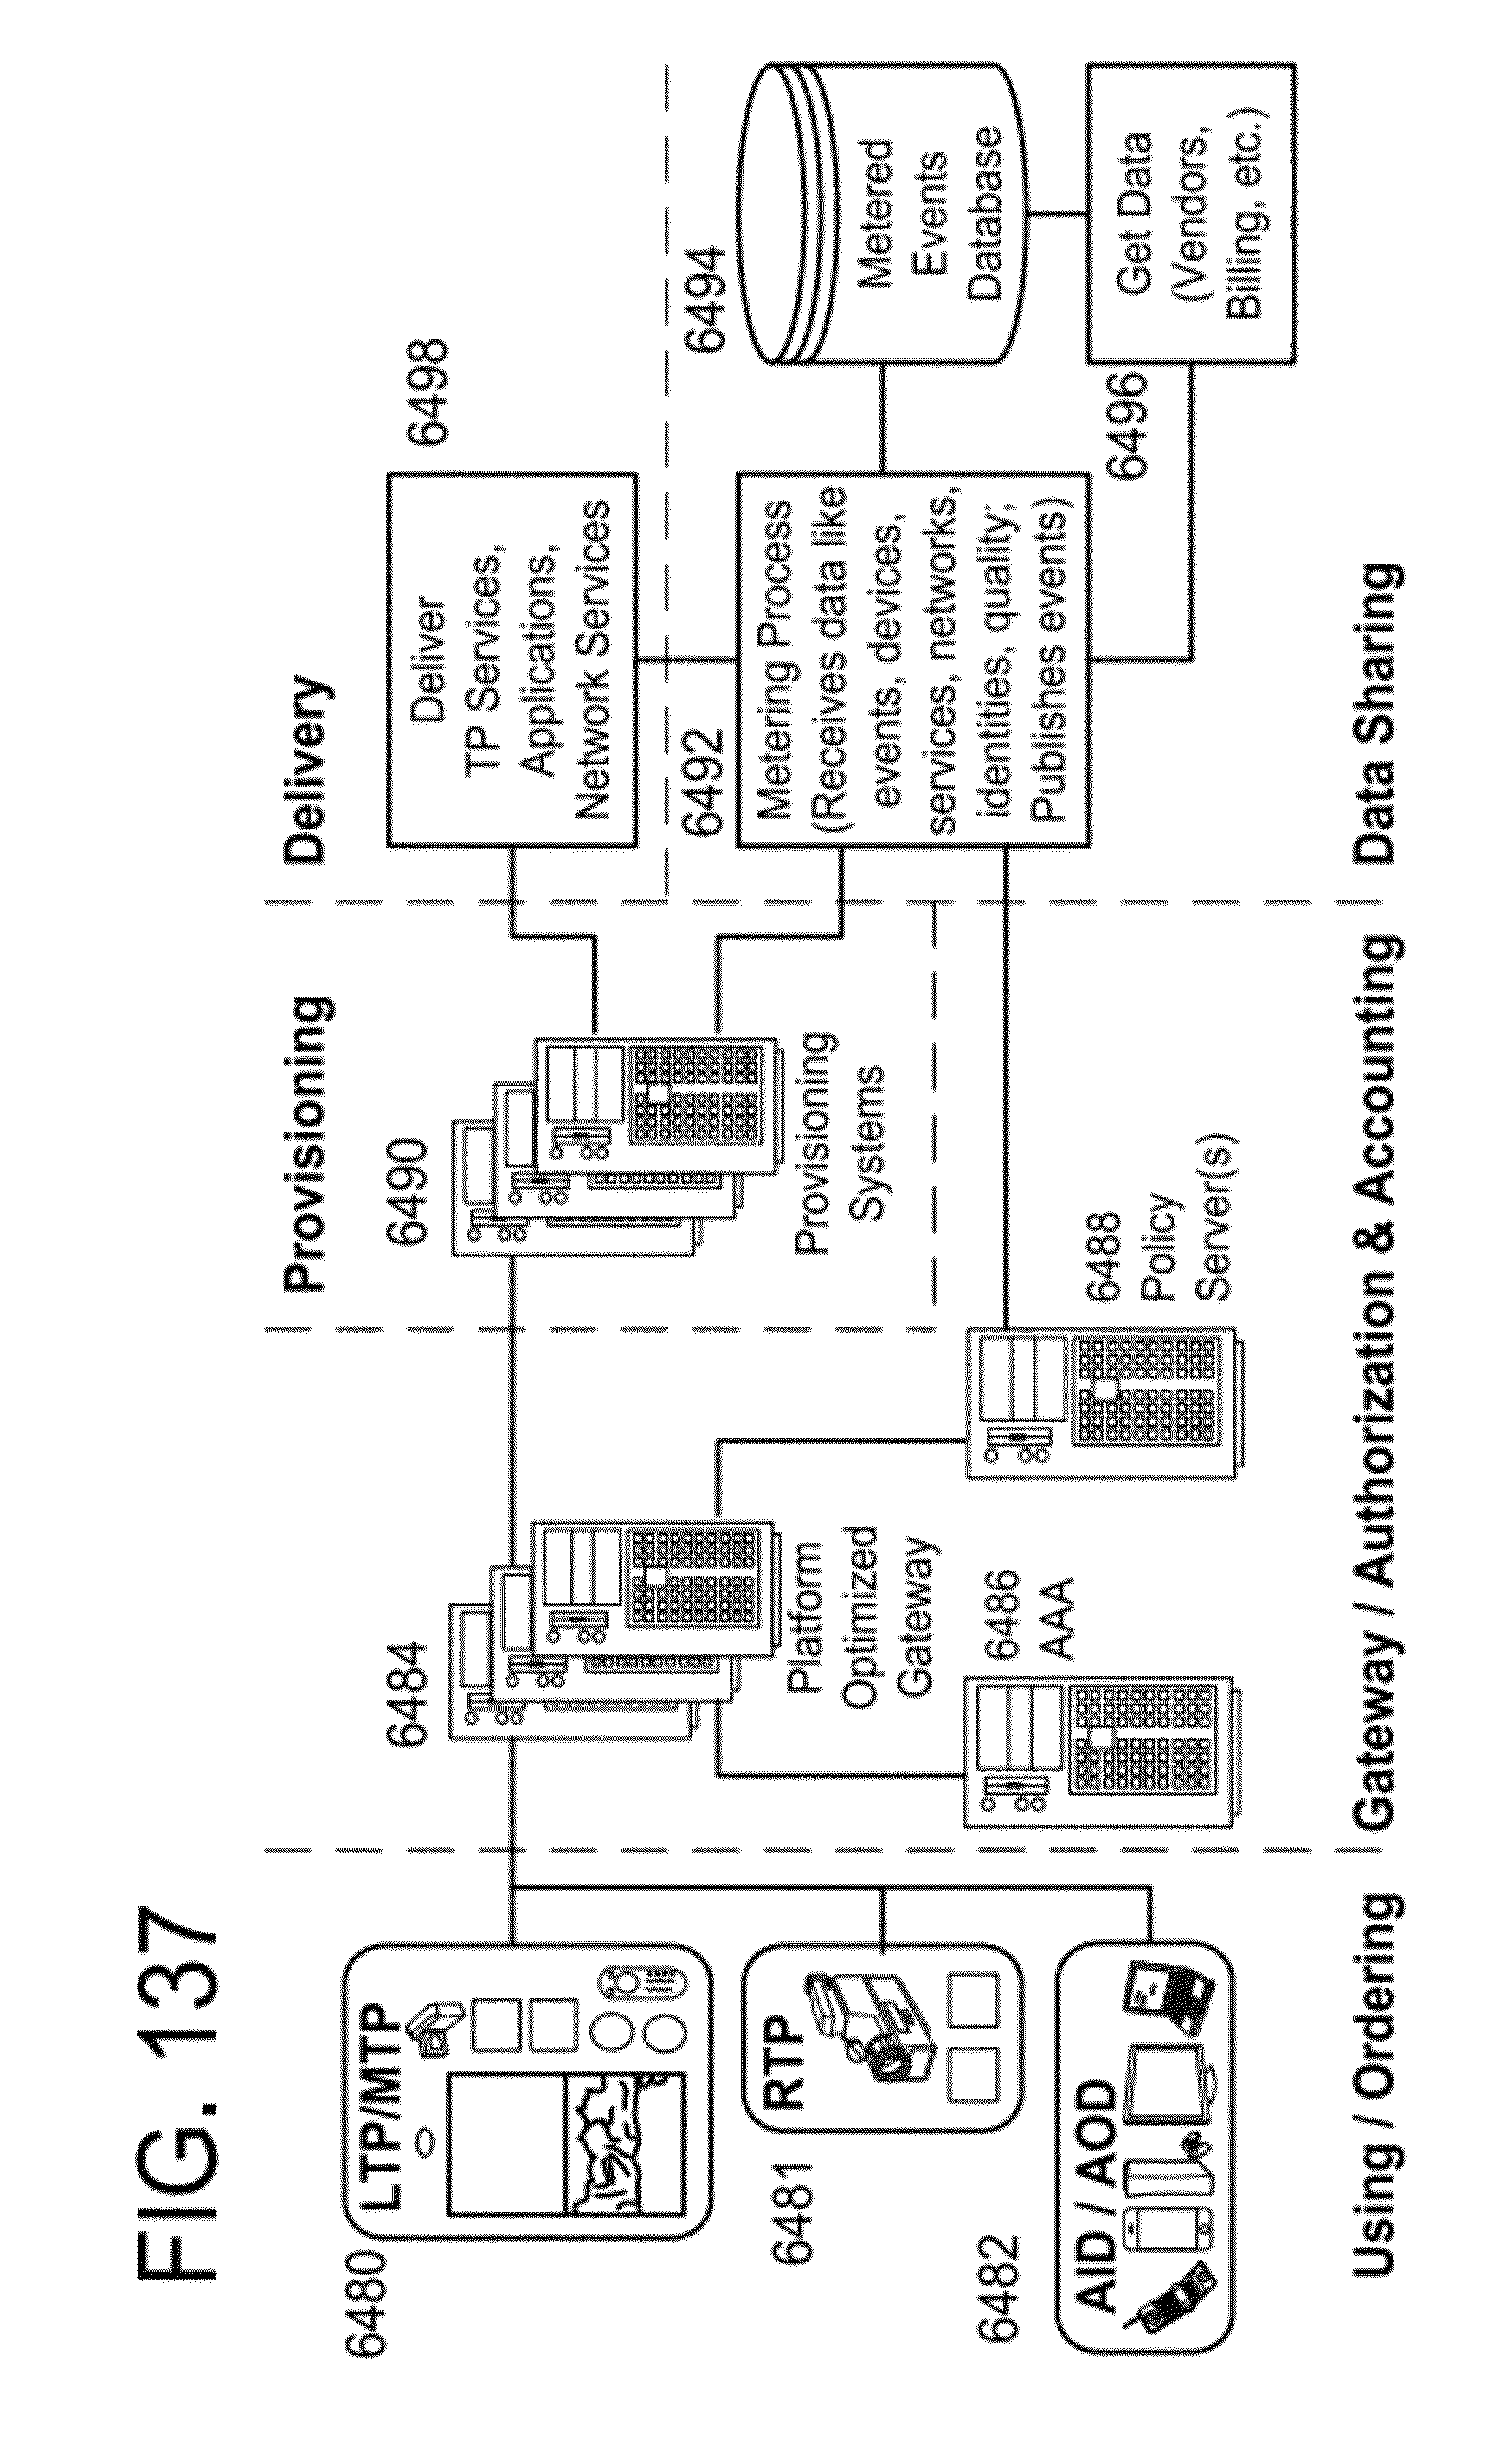 Patent Us 9183560 B2 Smart Witness Wiring Diagram Images